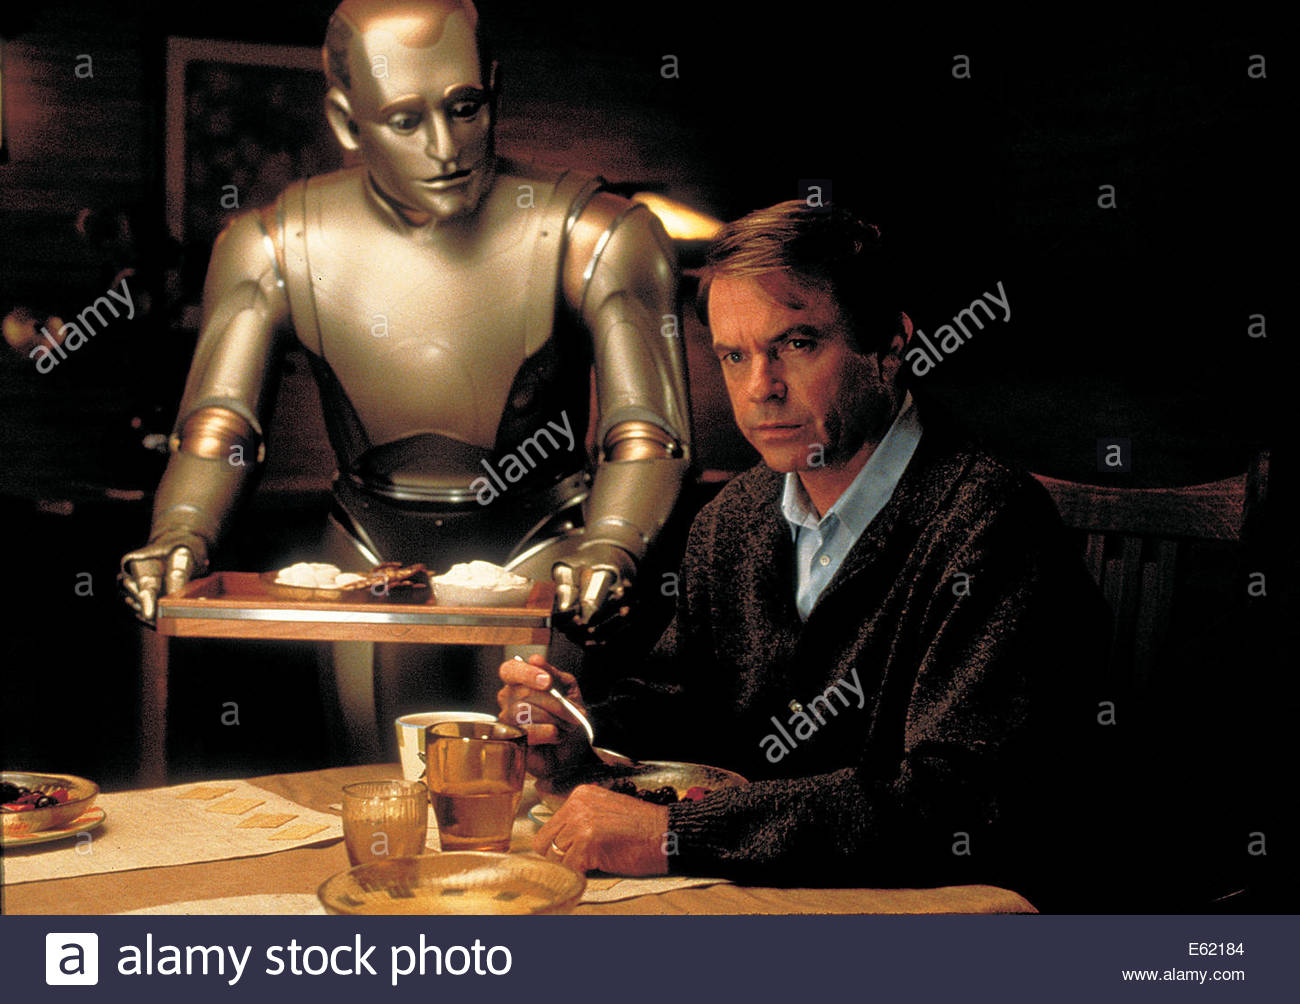 Bicentennial Man  (1999) PICTURED:  ROBIN WILLIAMS, SAM NEILL. Courtesy Granamour Weems Collection.  Editorial use - Stock Image